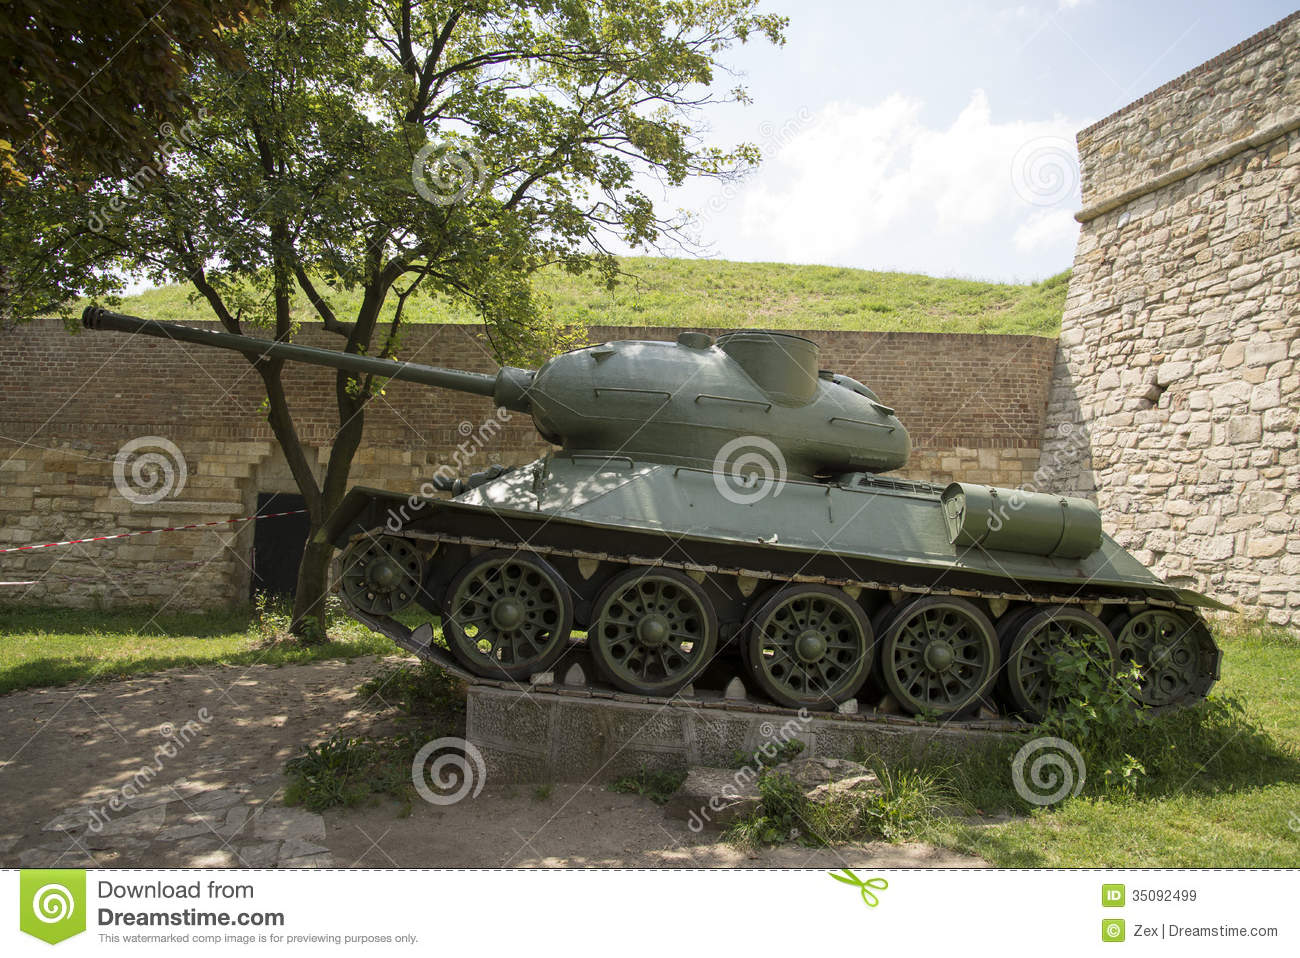 Old Army Tank Photo Royalty Free Stock Images - Image: 35092499